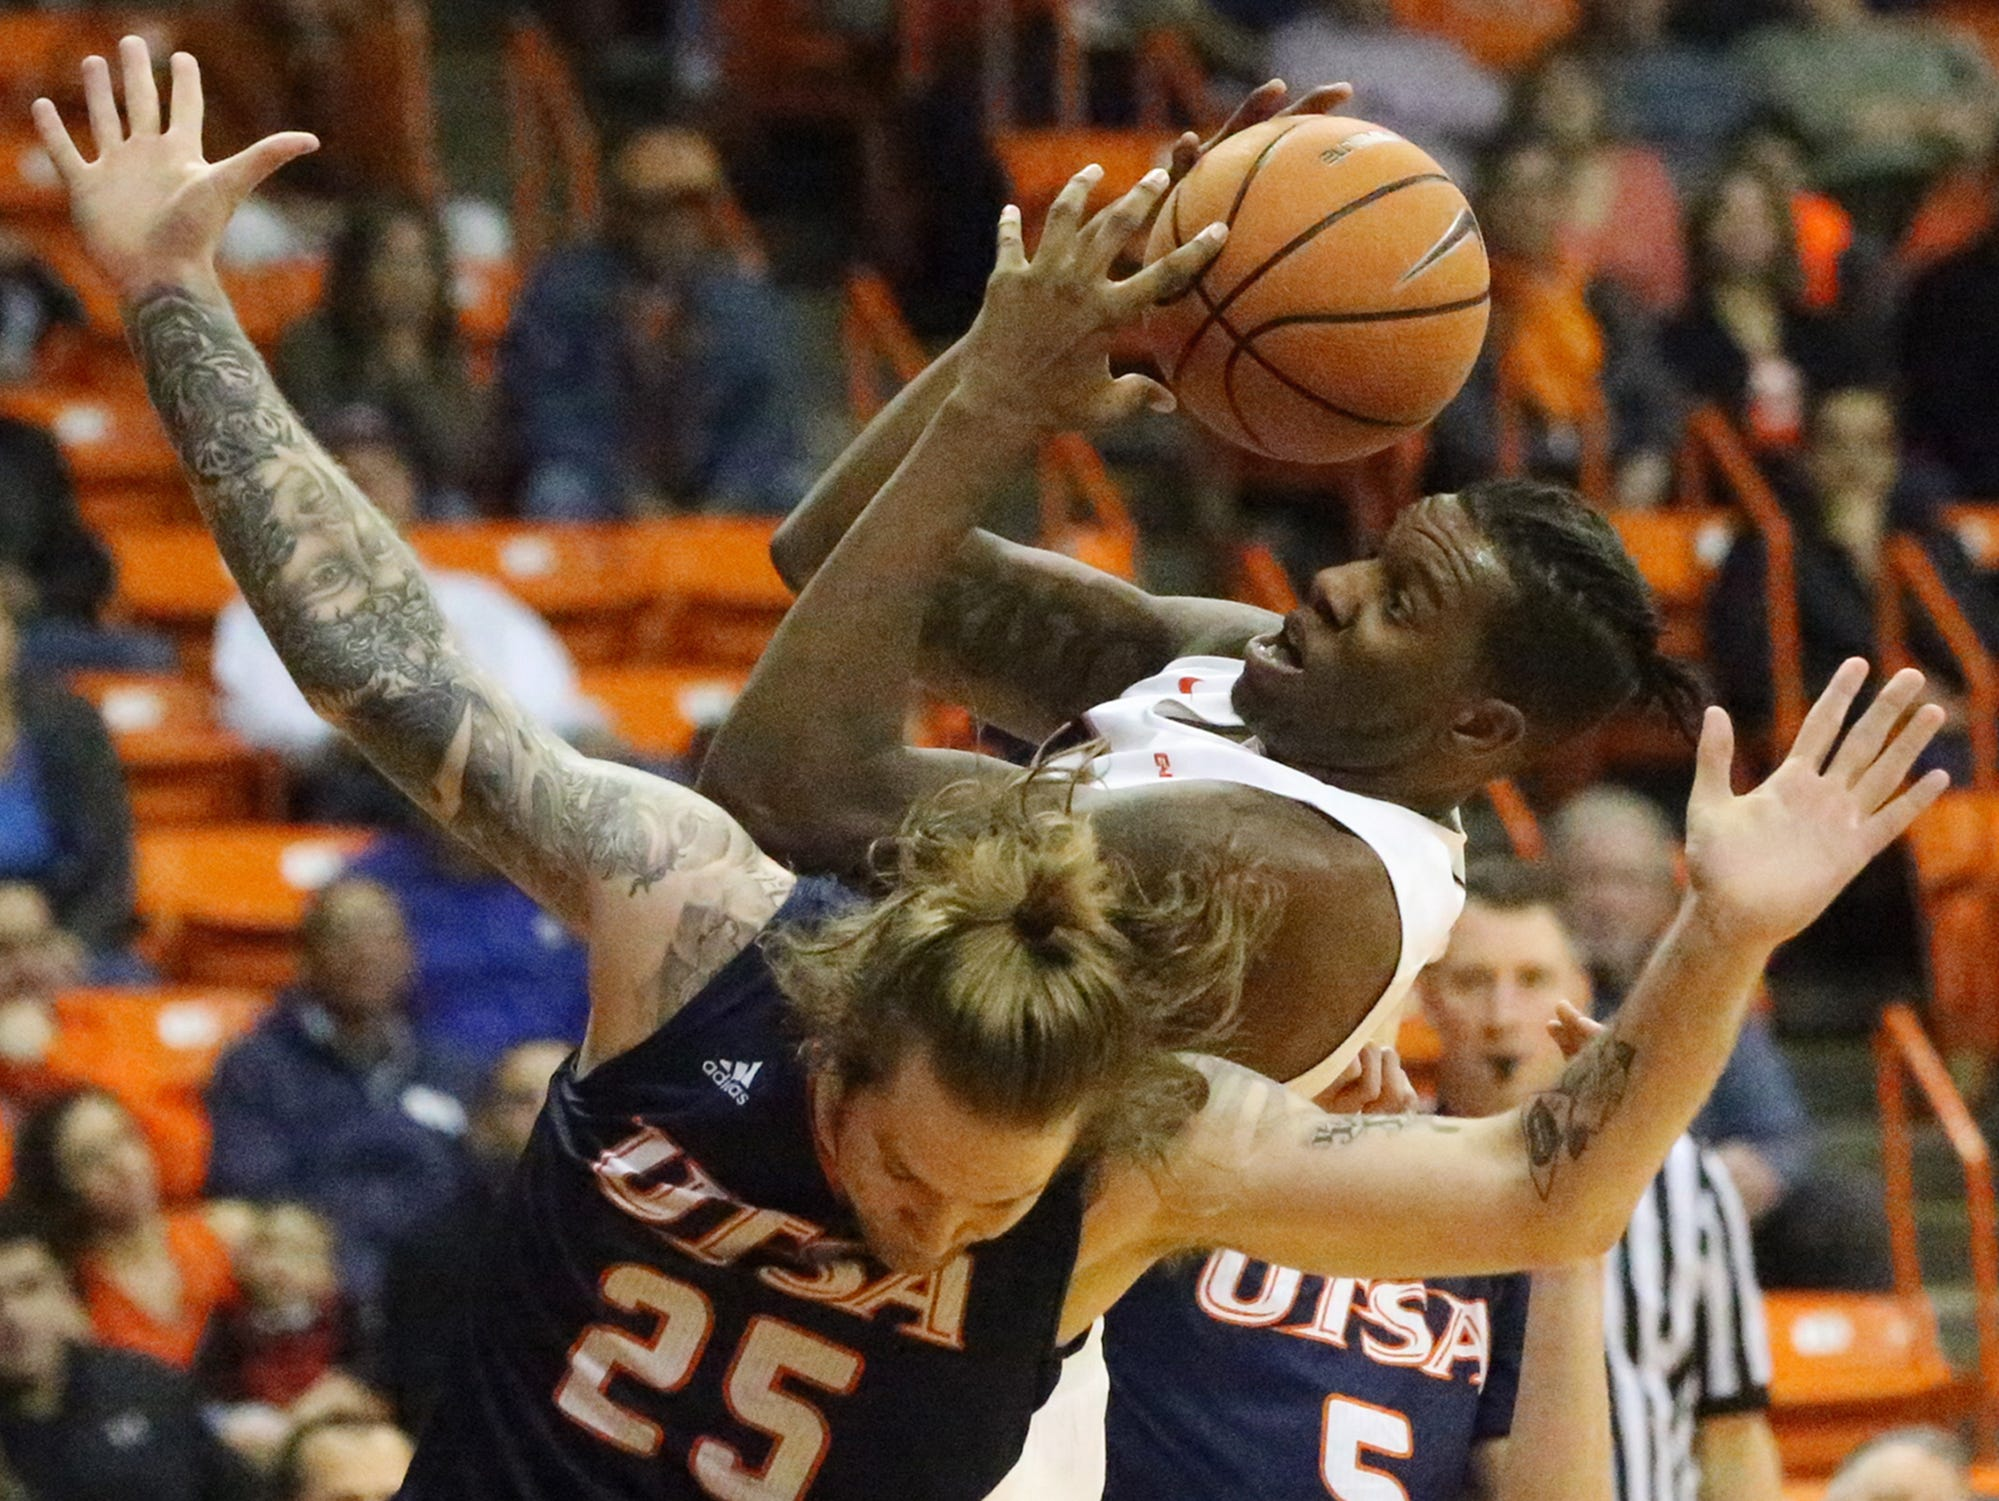 UTEP freshman forward Tirus Smith grabs a rebound while coming down on the back of UTSA's Nick Allen, 25, Saturday night in the Don Haskins Center. Smith was called for a foul followed by a technical foul for saying something to a UTSA player just after the play.